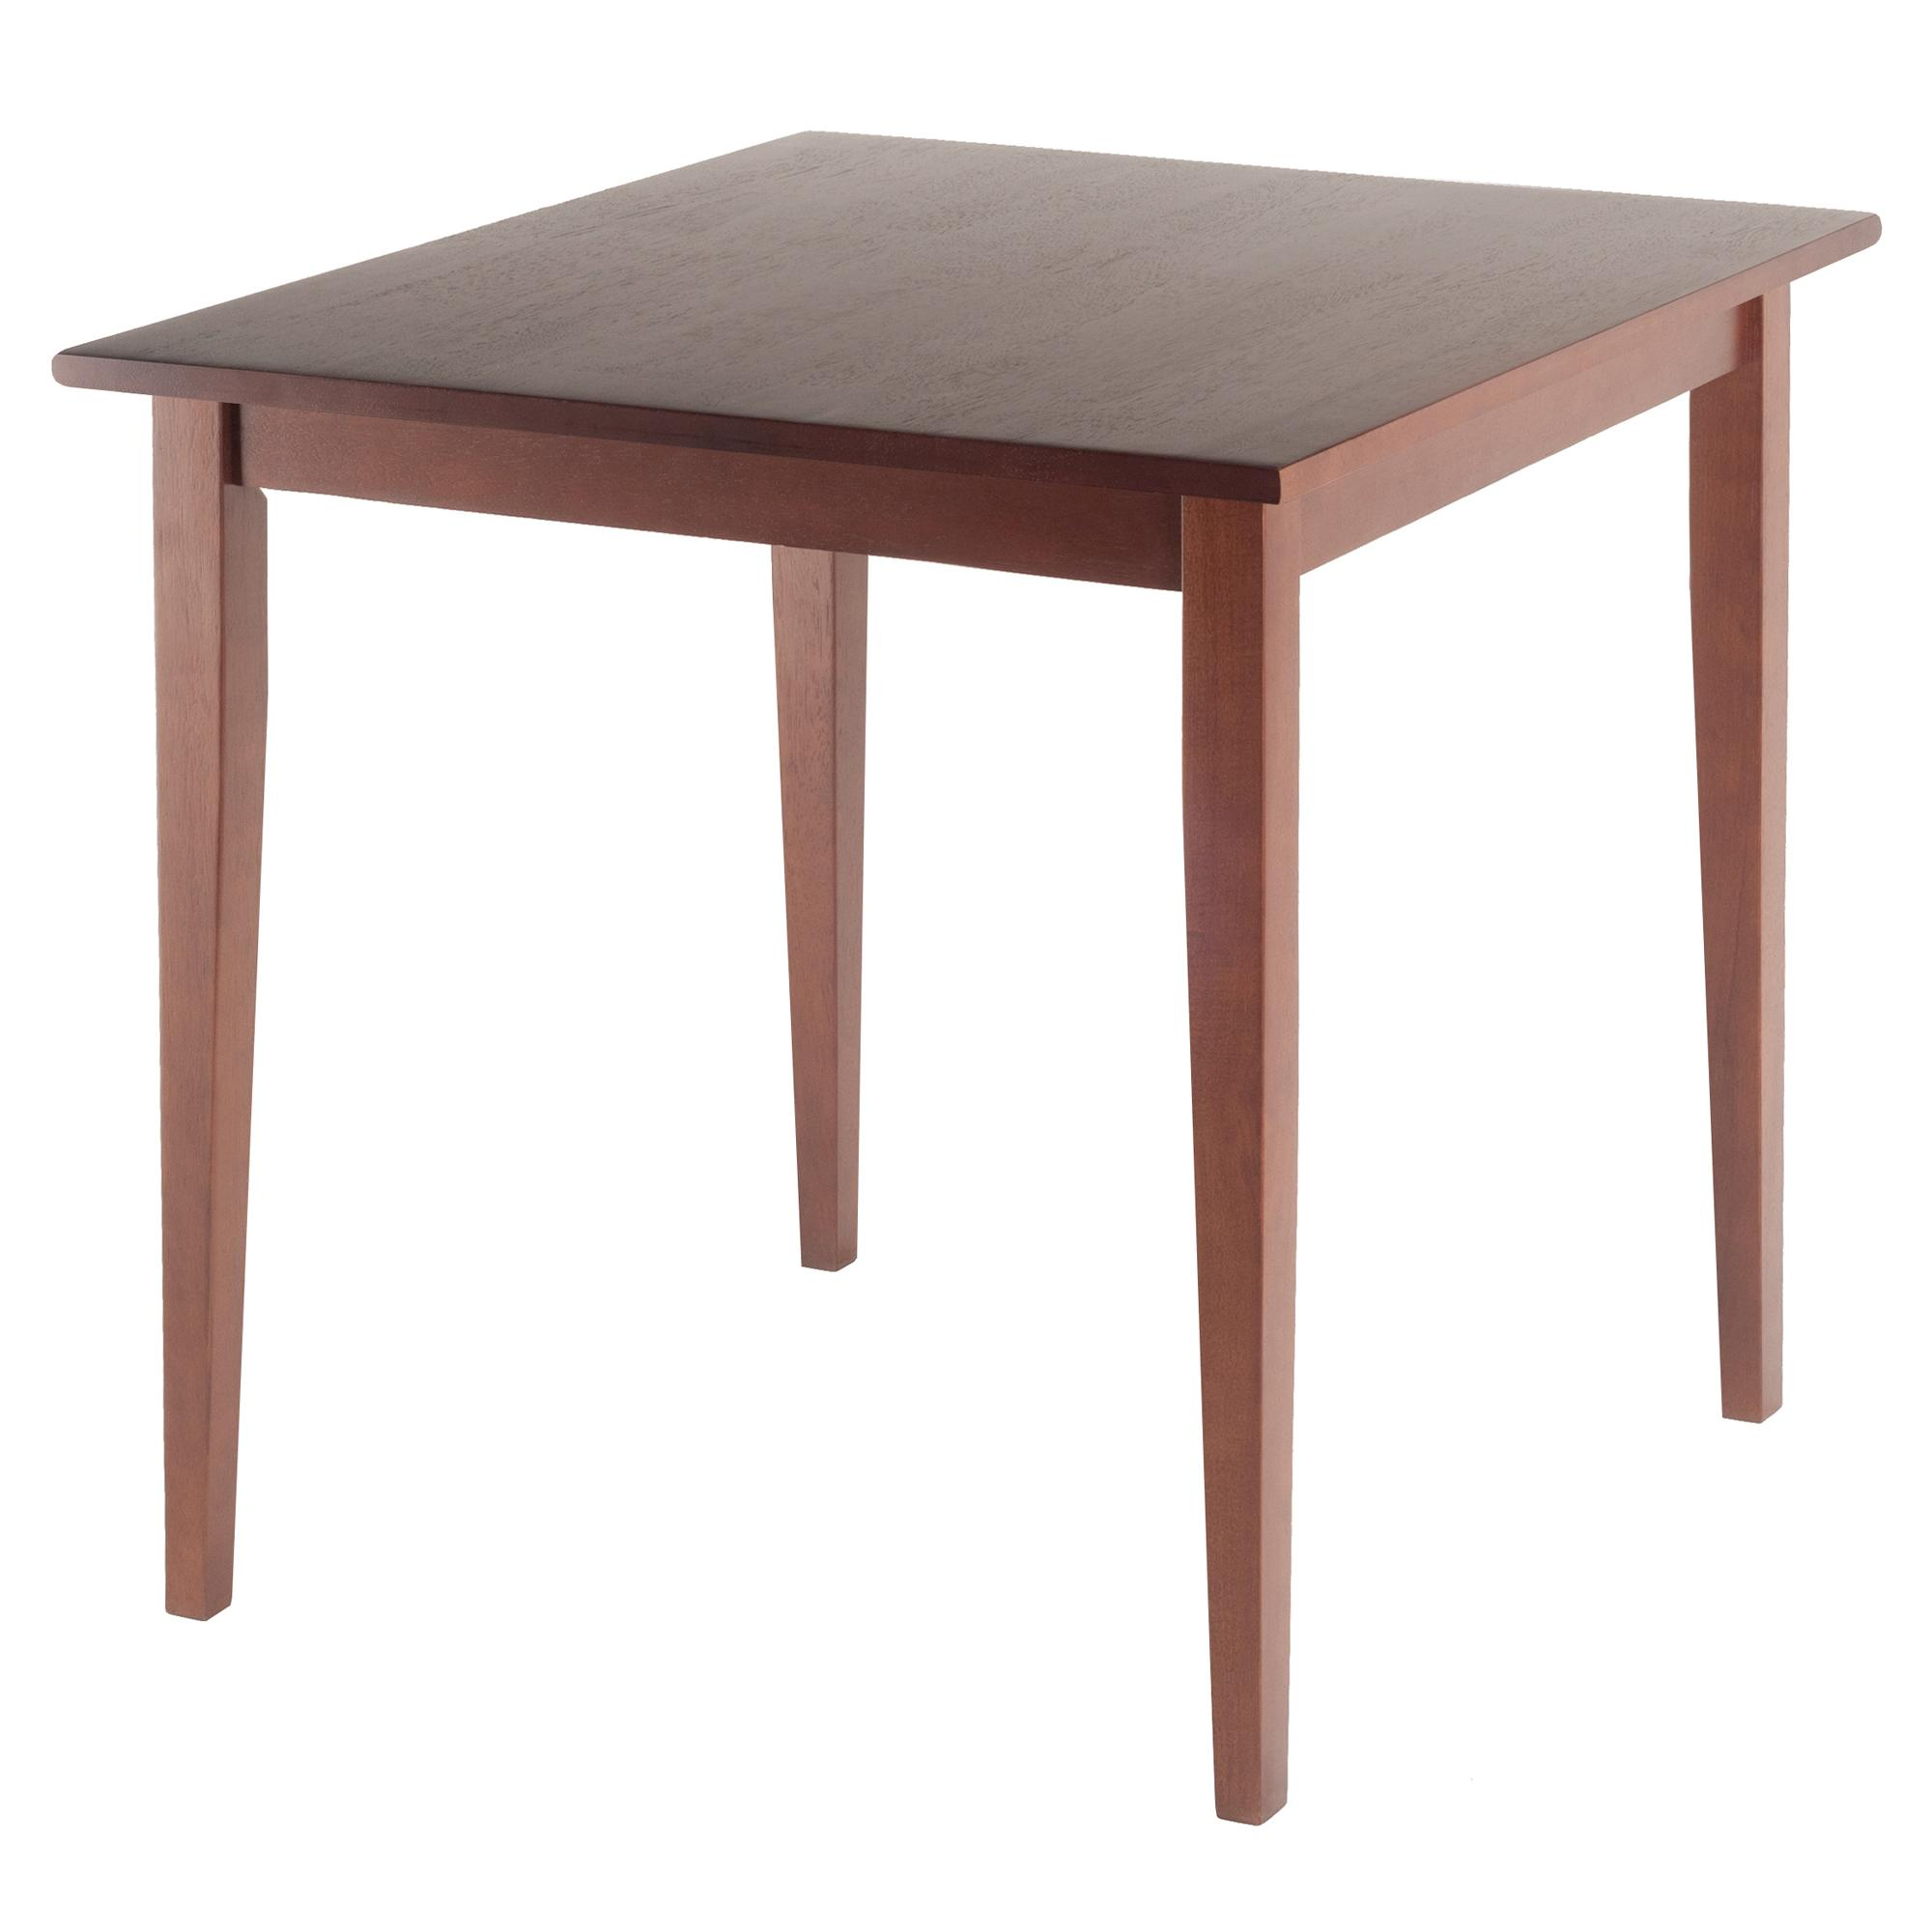 Winsome wood groveland square dining table in antique for One leg dining table